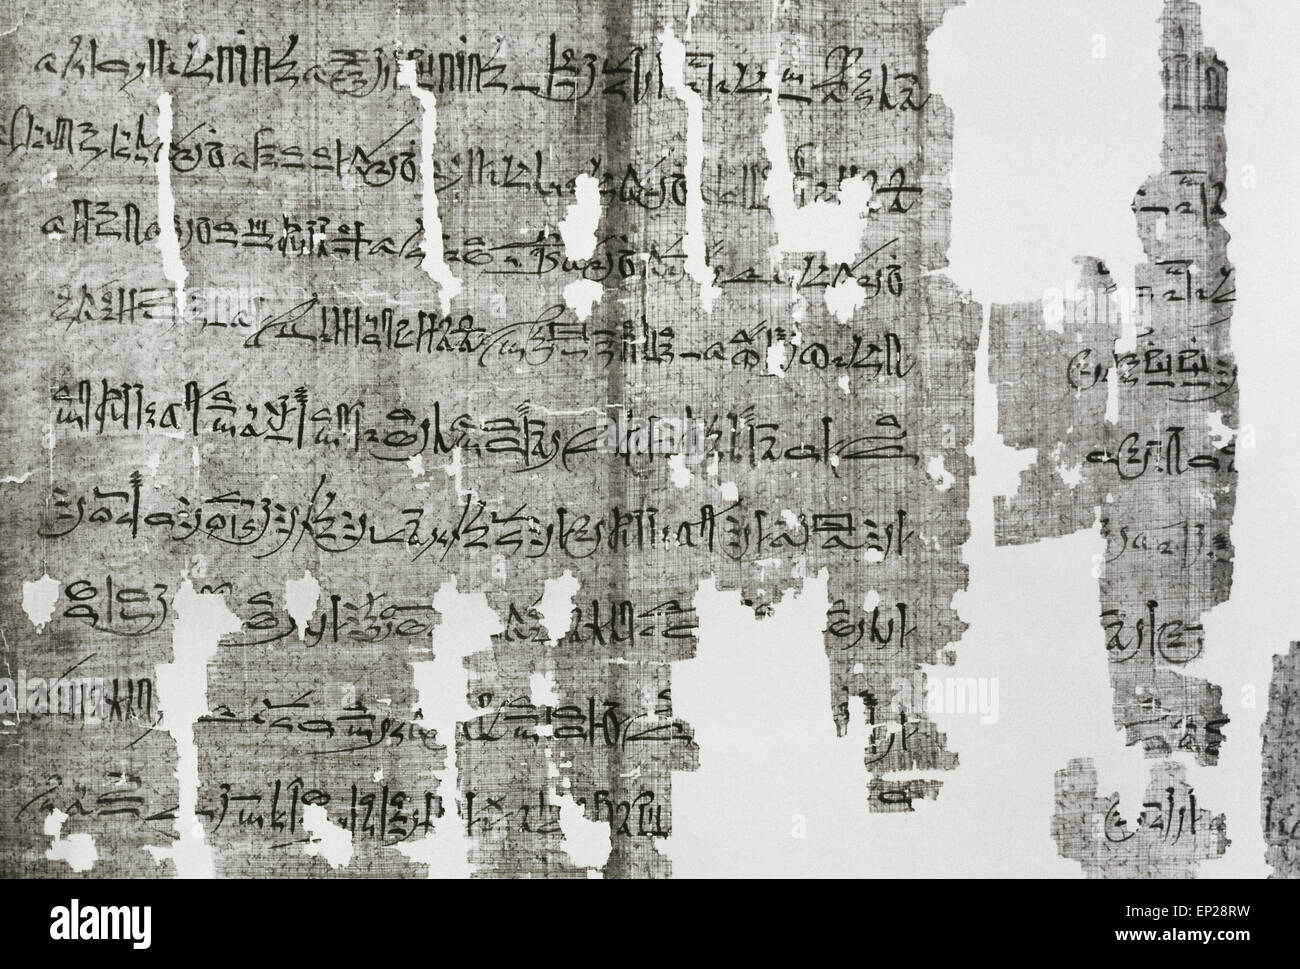 Papyrus Writing Egypt Stock Photos amp Papyrus Writing Egypt Stock Hieratic Papyrus Cursive Writing System Used In Ancient Egypt Process EPRW Papyrus Writing Egypt